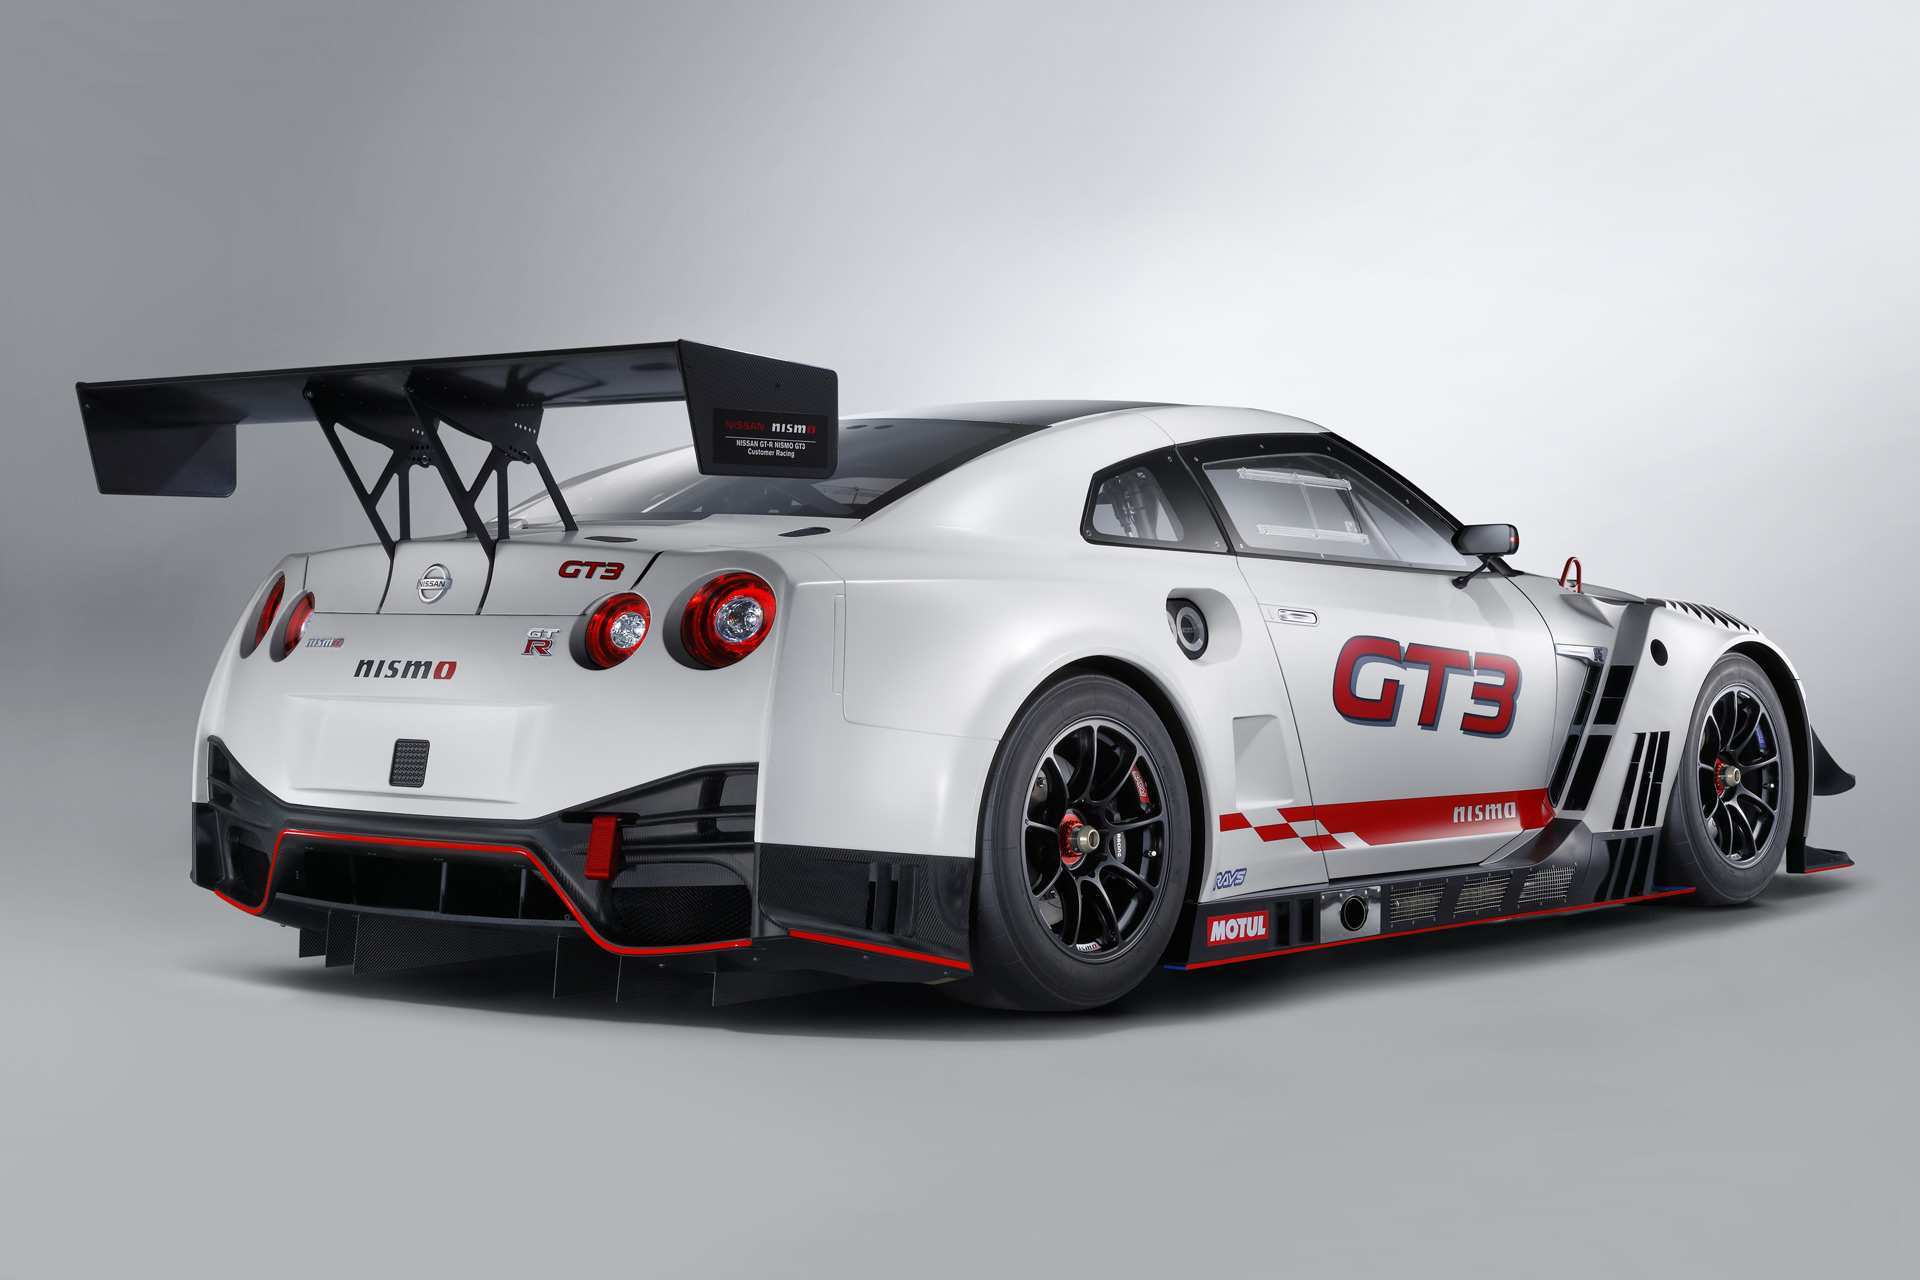 50 New Nissan Gtr 2019 Top Speed Price Design And Review